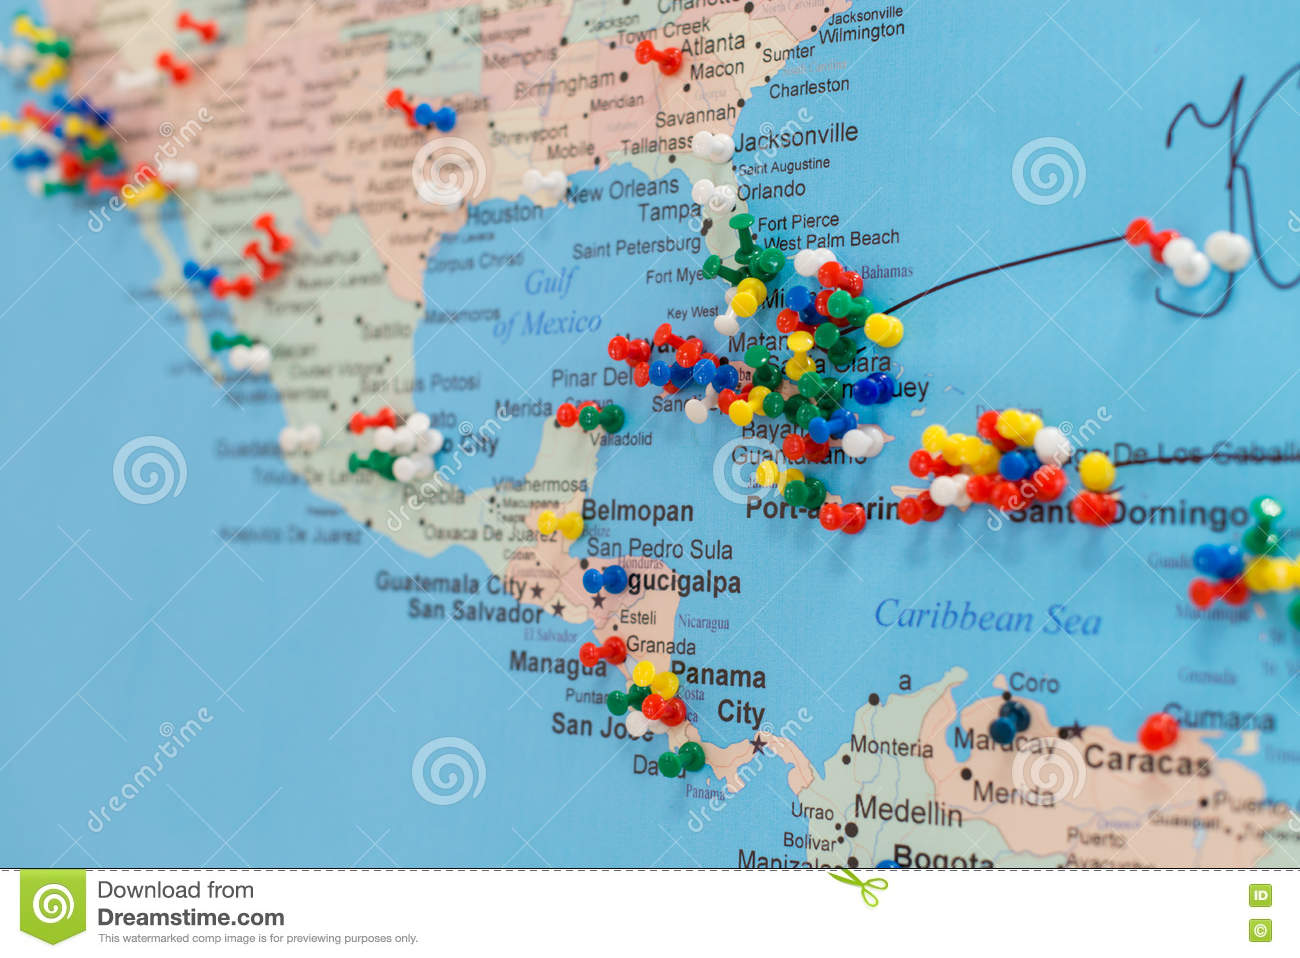 Buttons On The Cuba On The World Map Stock Image - Image of button ...